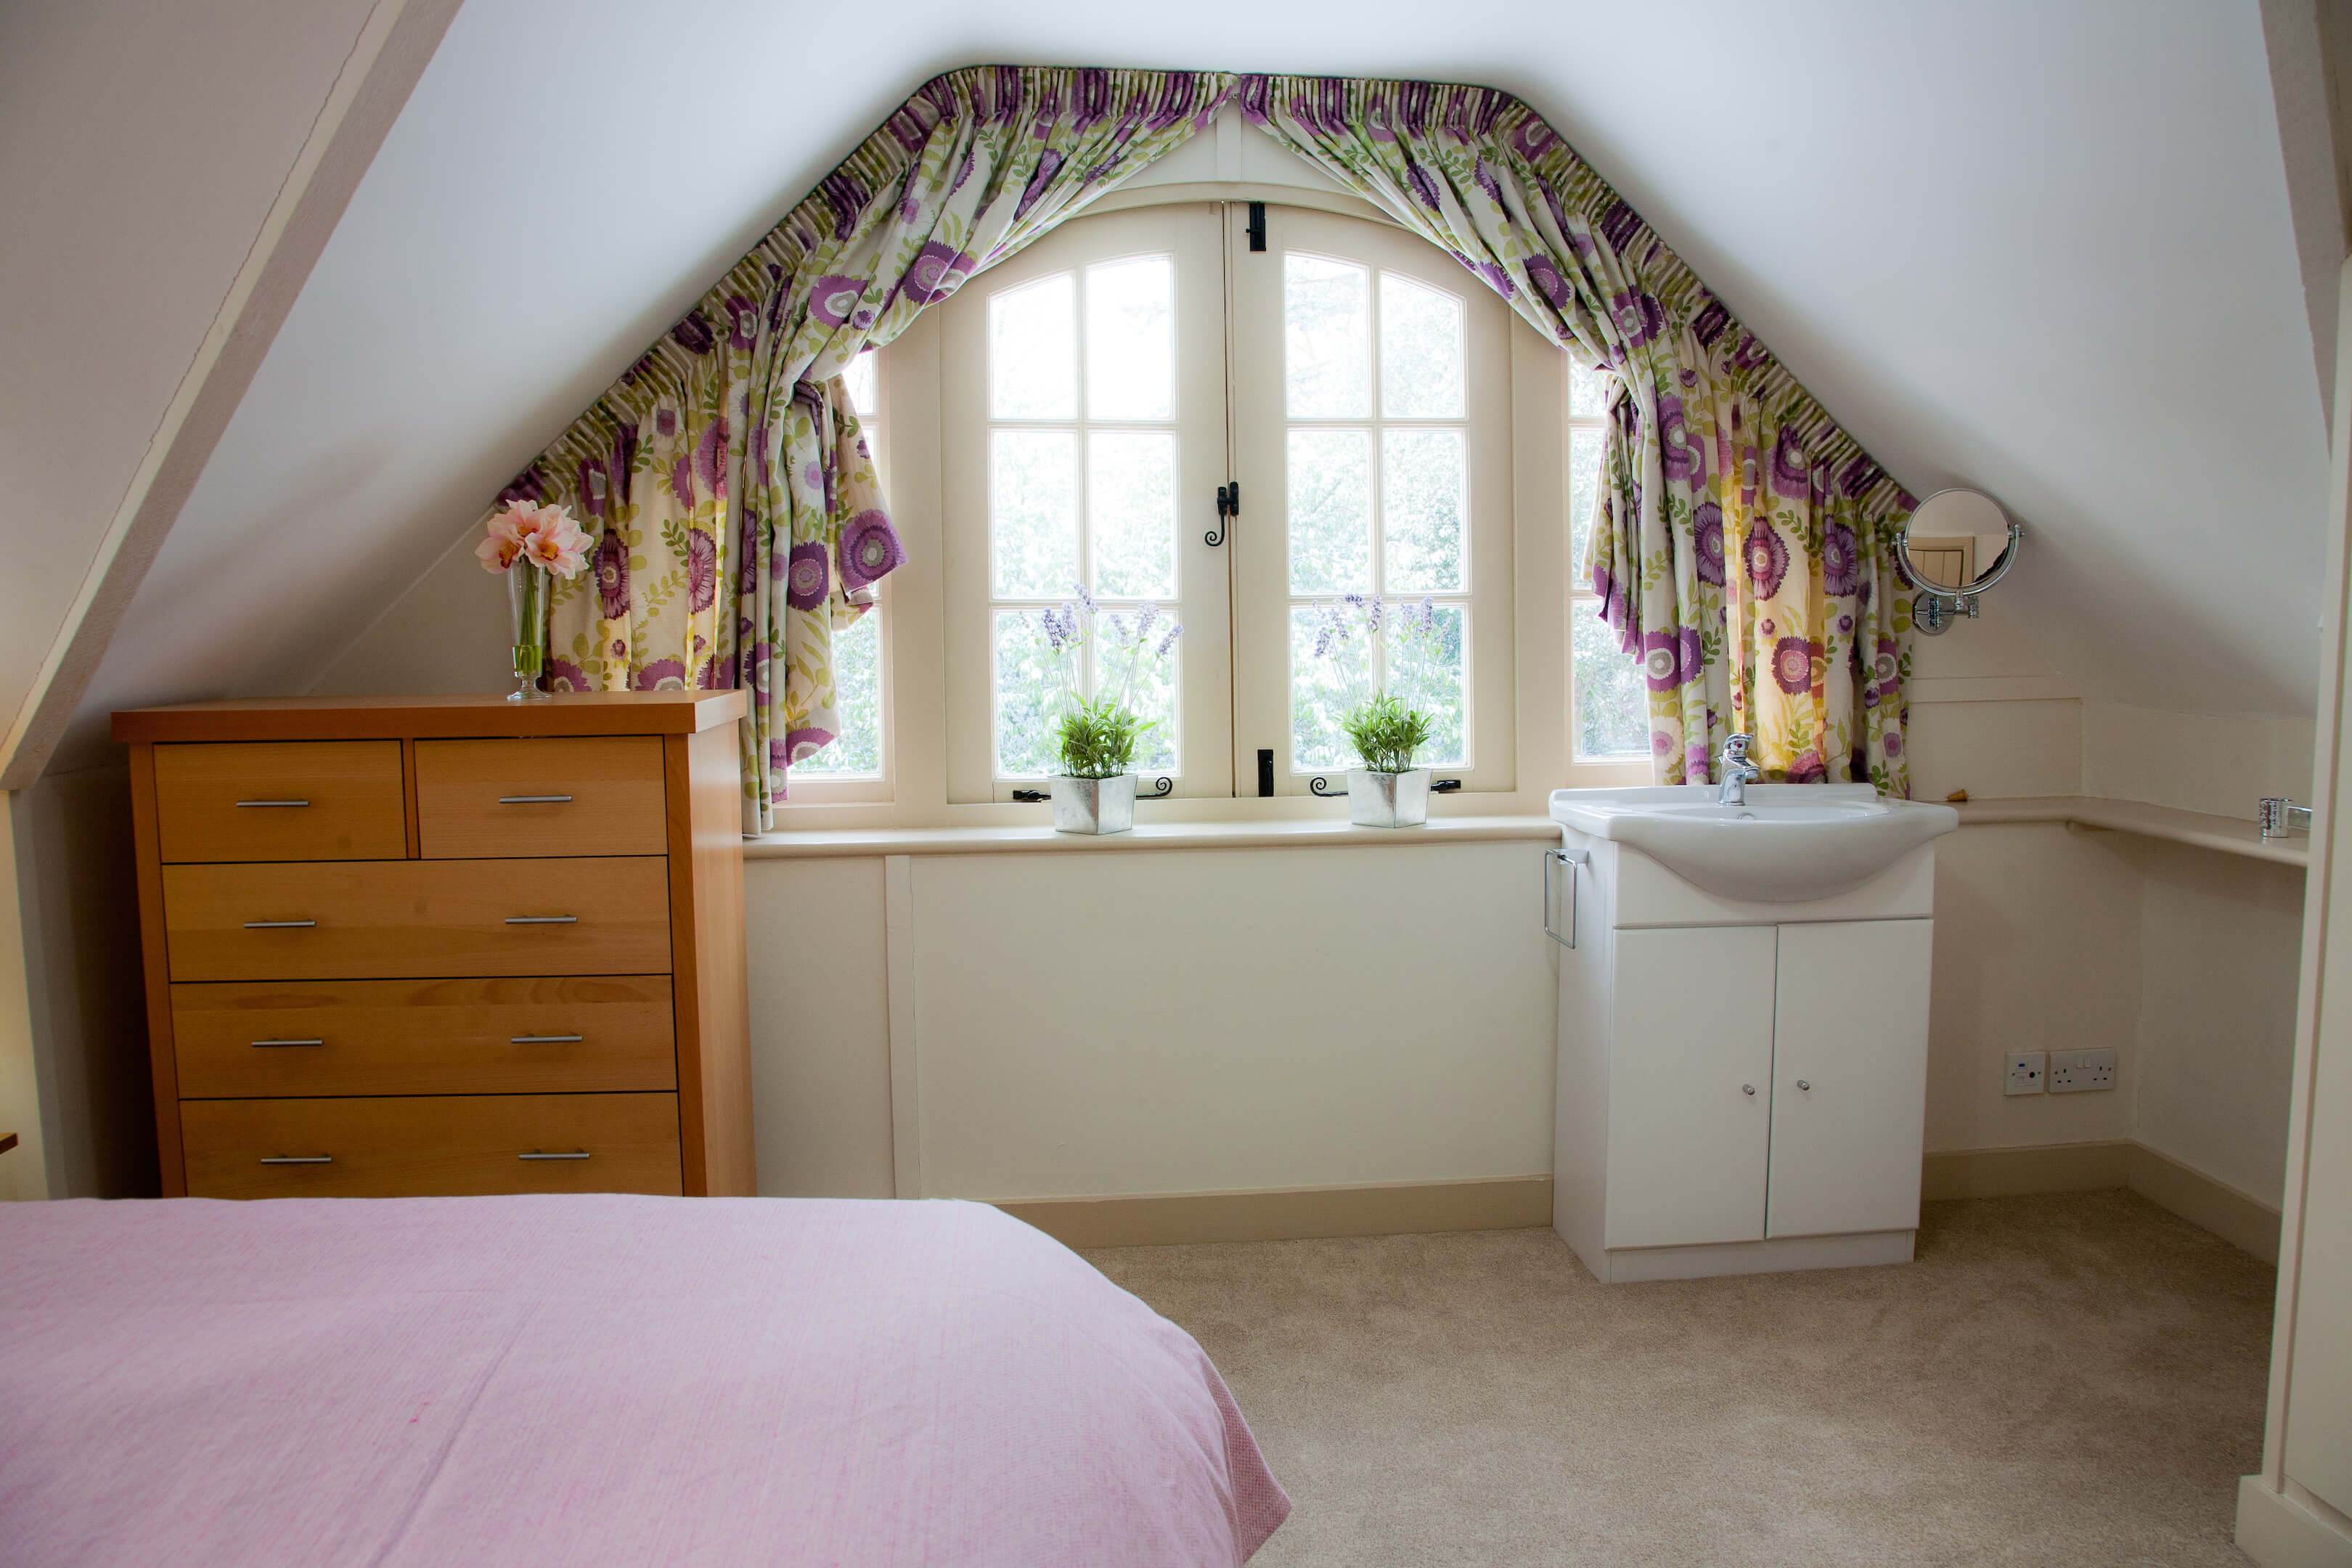 Oxford Shortlet Self Catering Apartment Doubleroom Beech Cottage 6